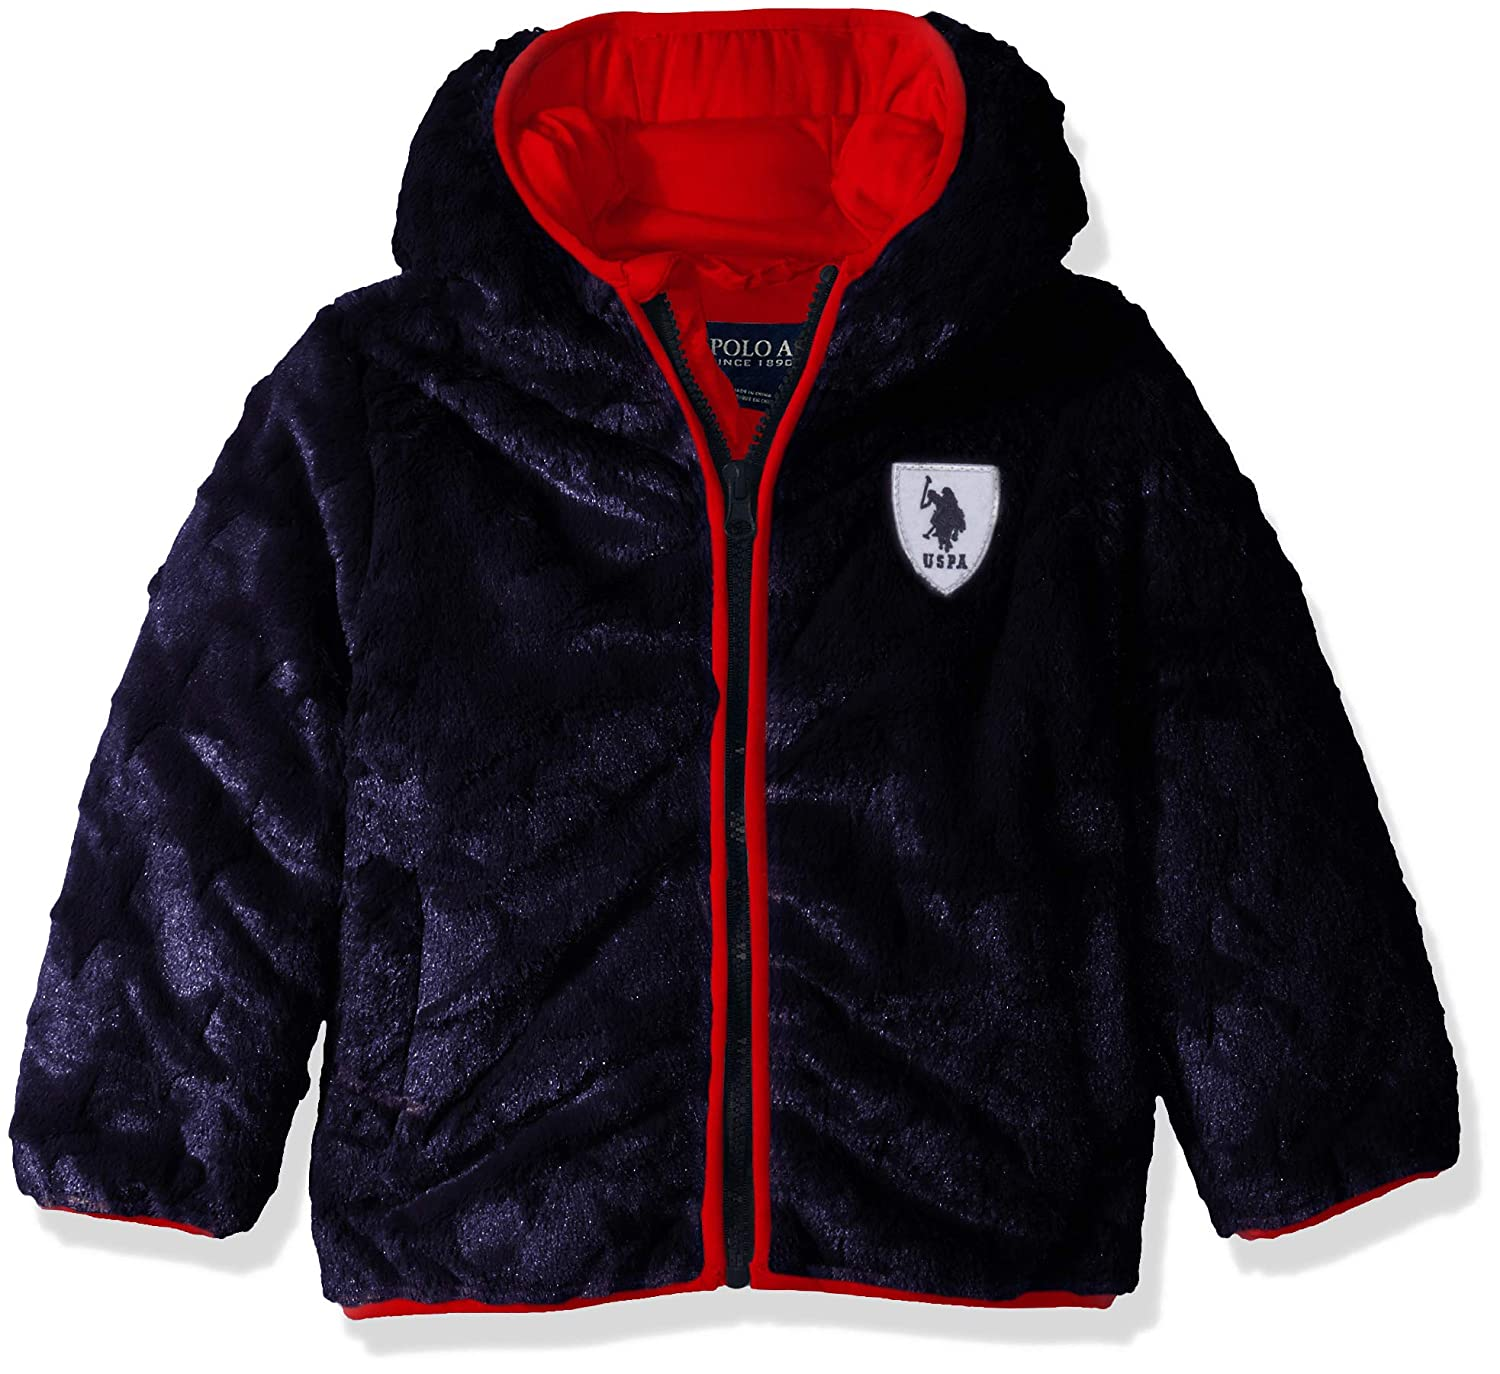 U.S. Polo Assn. Baby Boys Star Plush Jacket US Polo Association J_UD83H